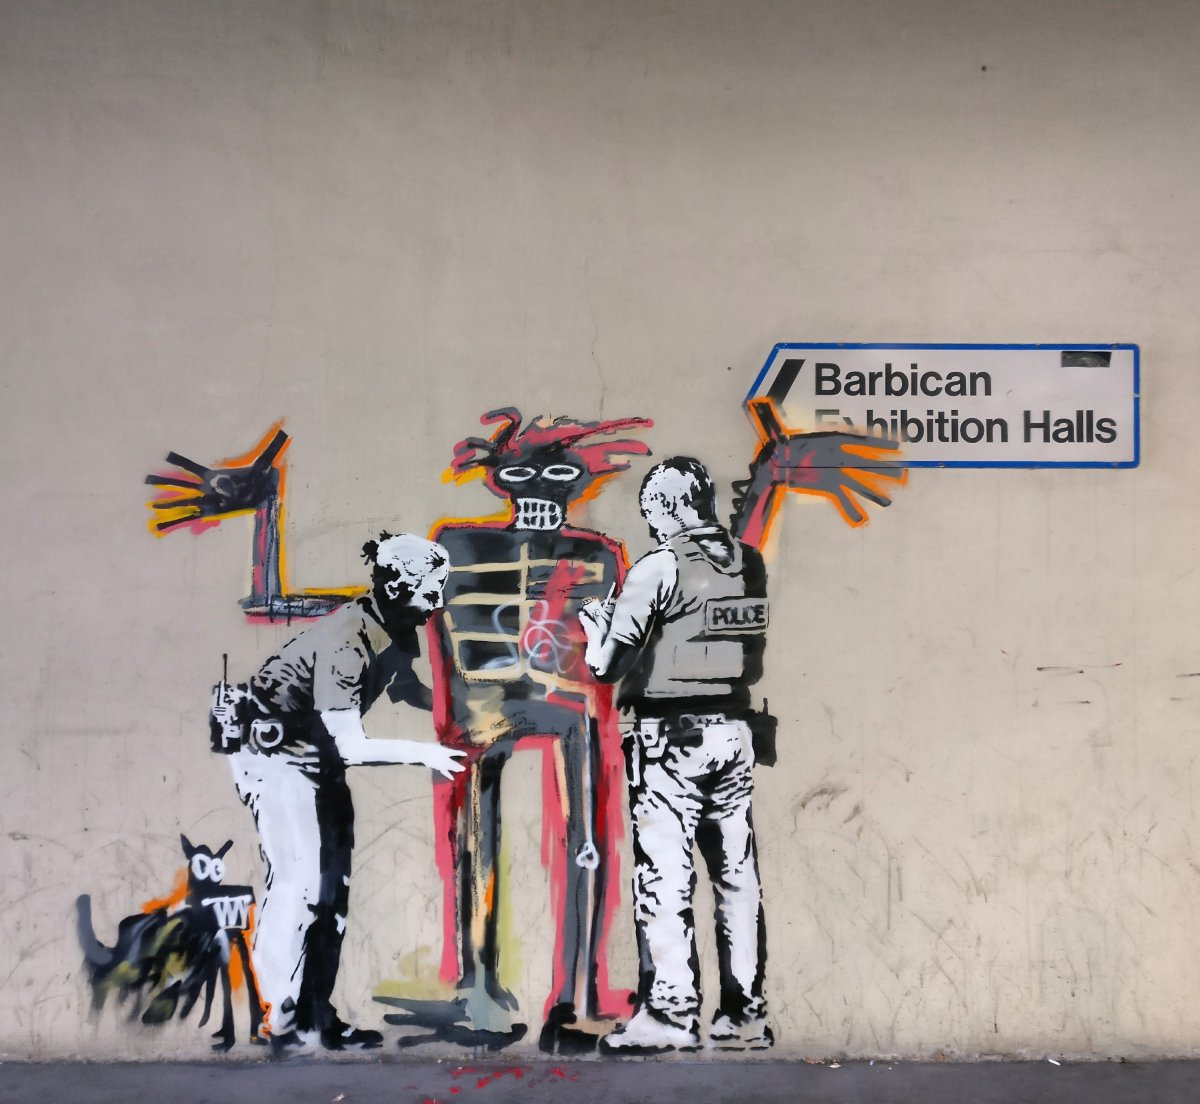 Banksy tribute mural to Jean-Michel Basquiat appears at the Barbican in London